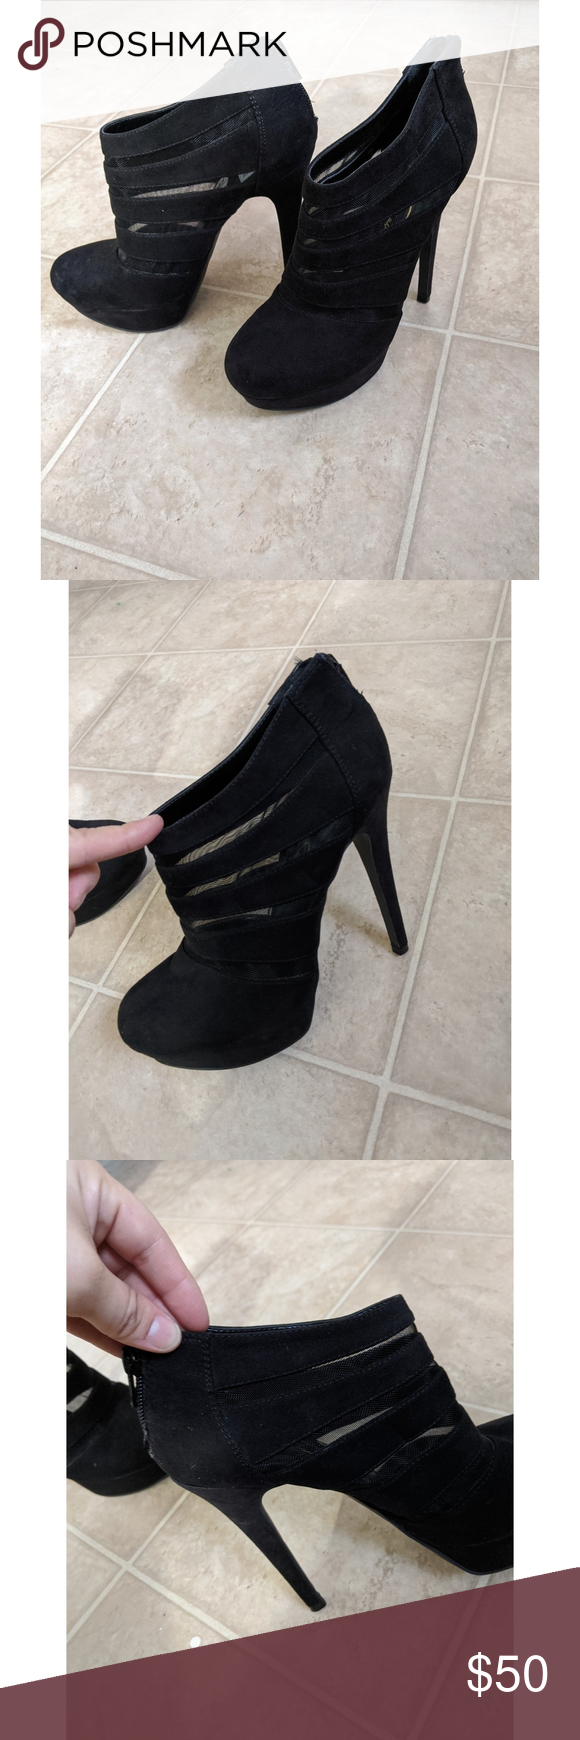 New Jessica Simpson Black Ankle Boots Sheer Mesh In 2020 Black Ankle Boots Ankle Boots Boots